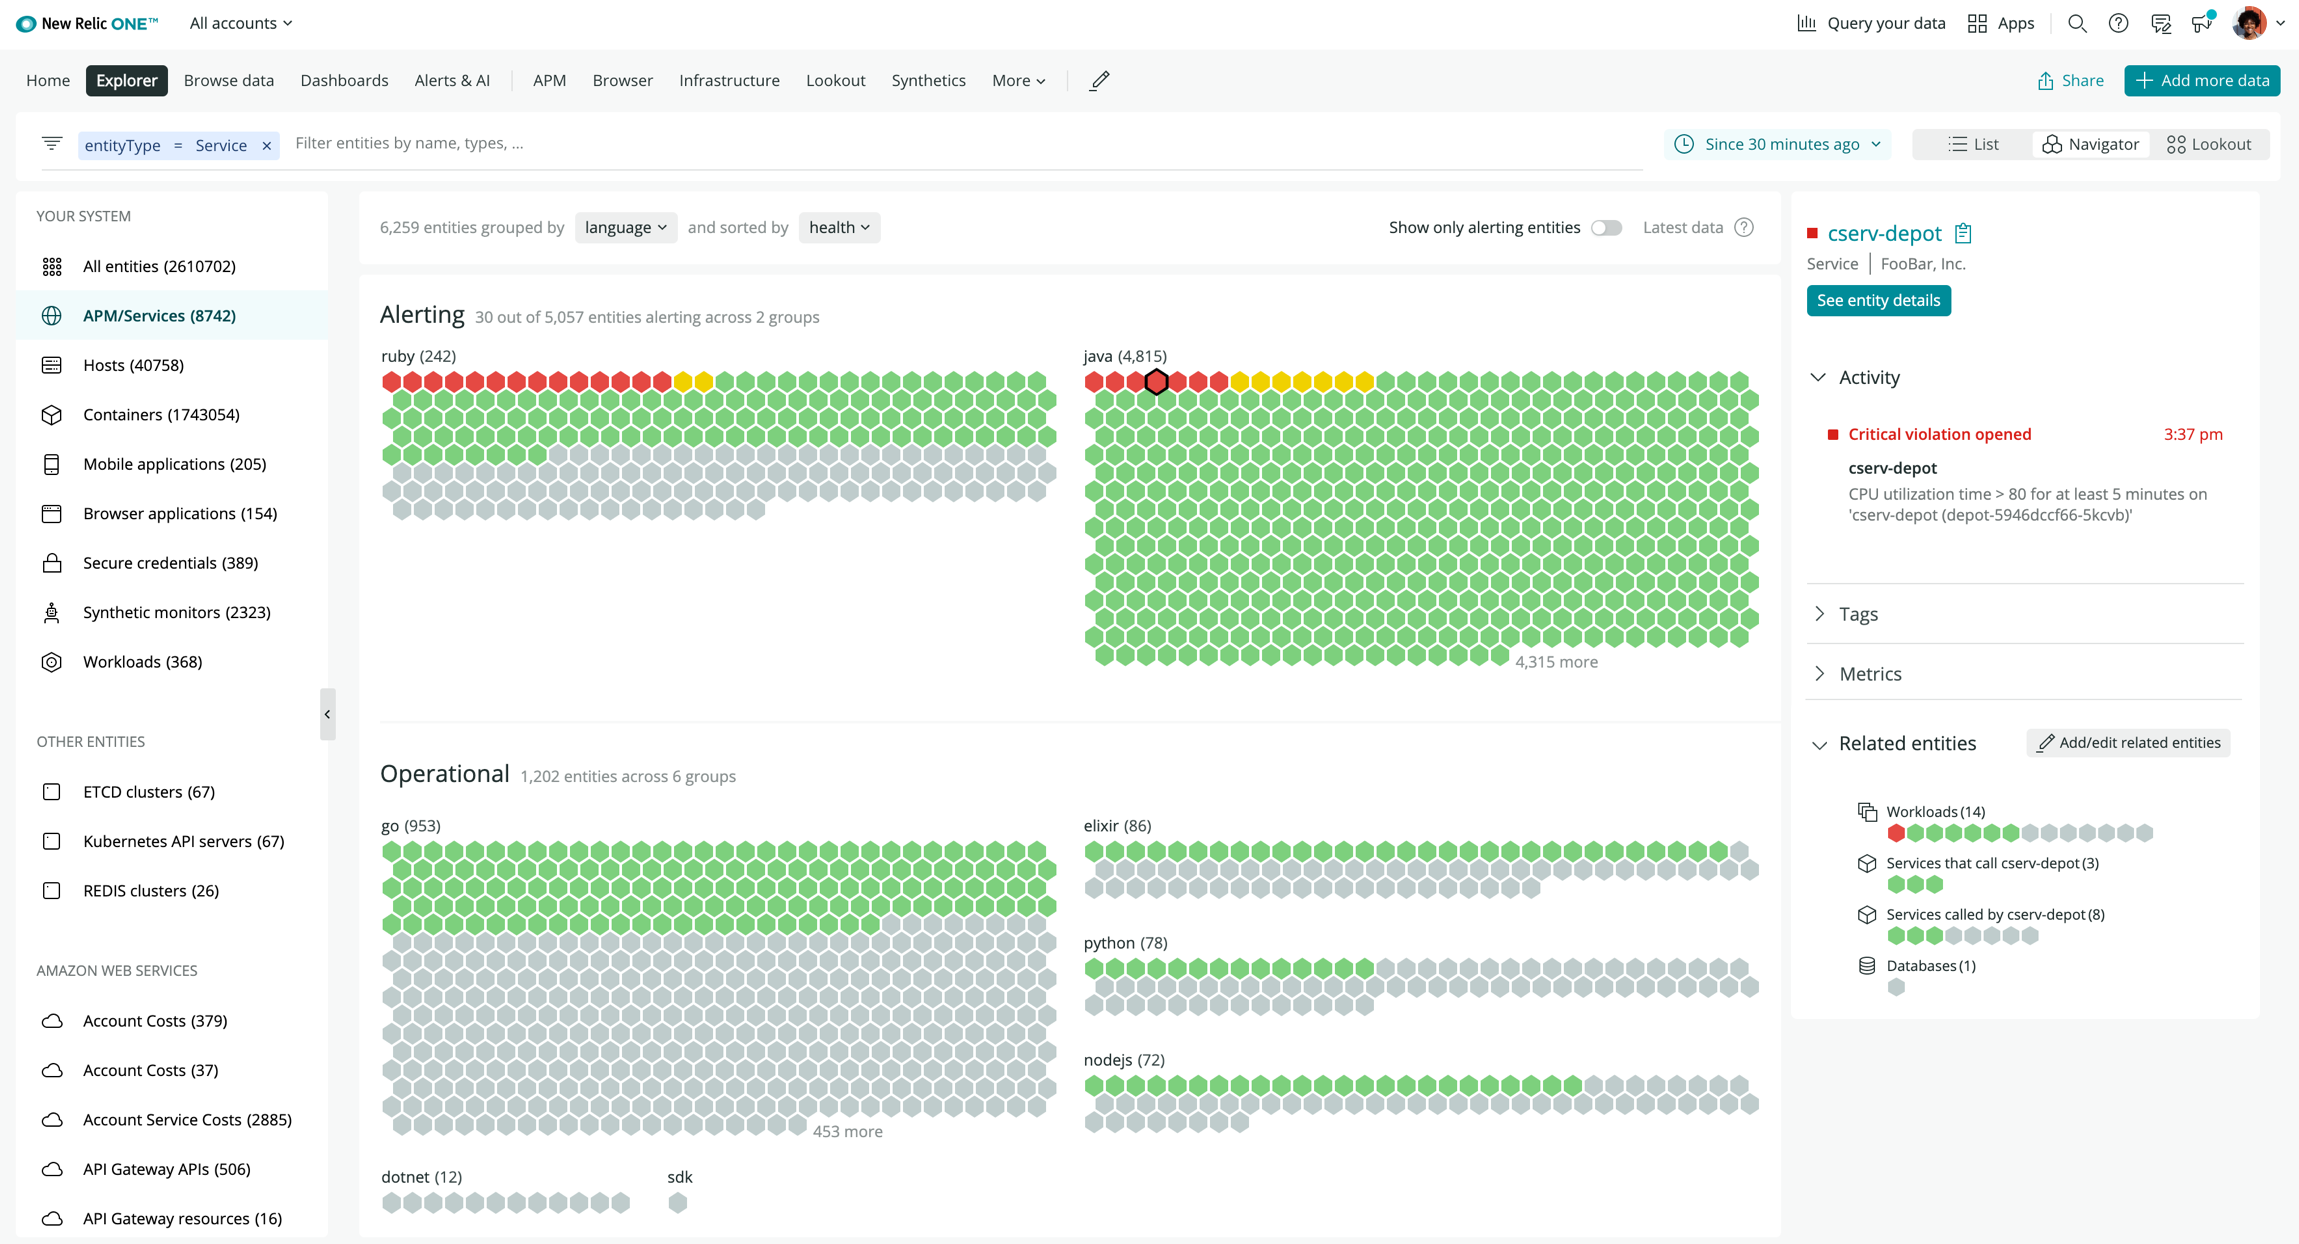 screenshot of New Relic Navigator